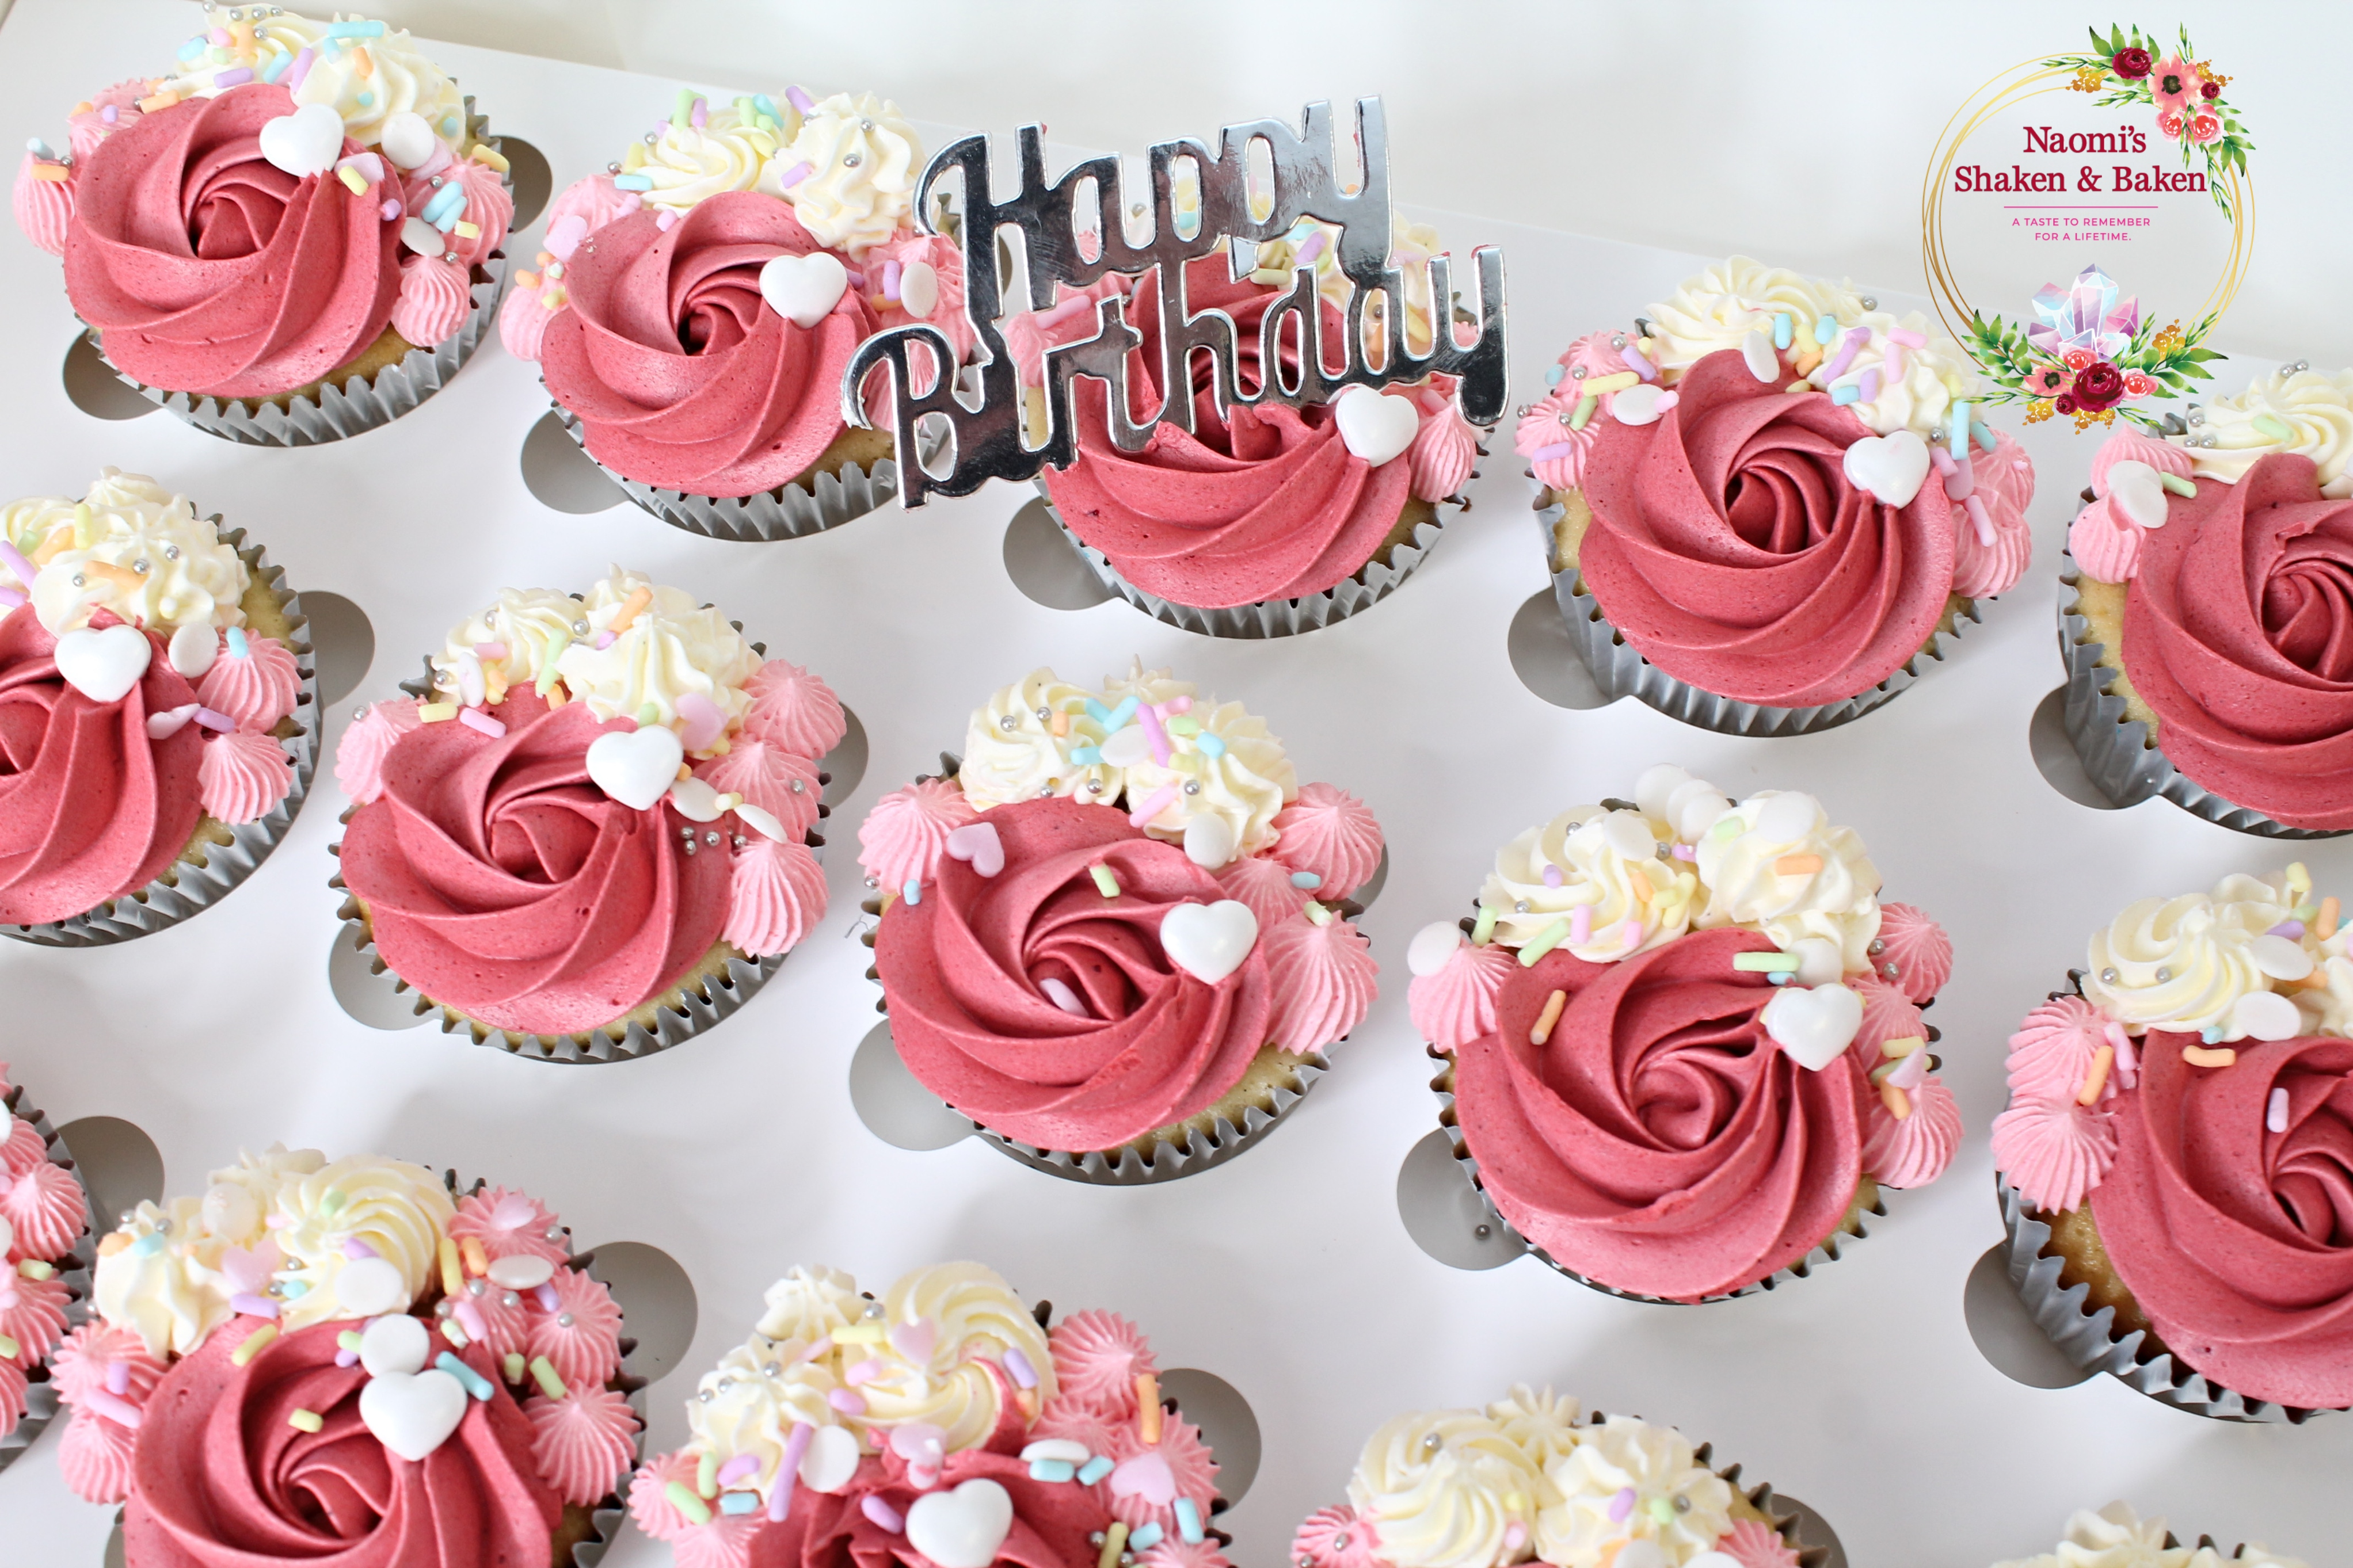 Happy Birthday Cupcakes In Mixed Pink For a 30th